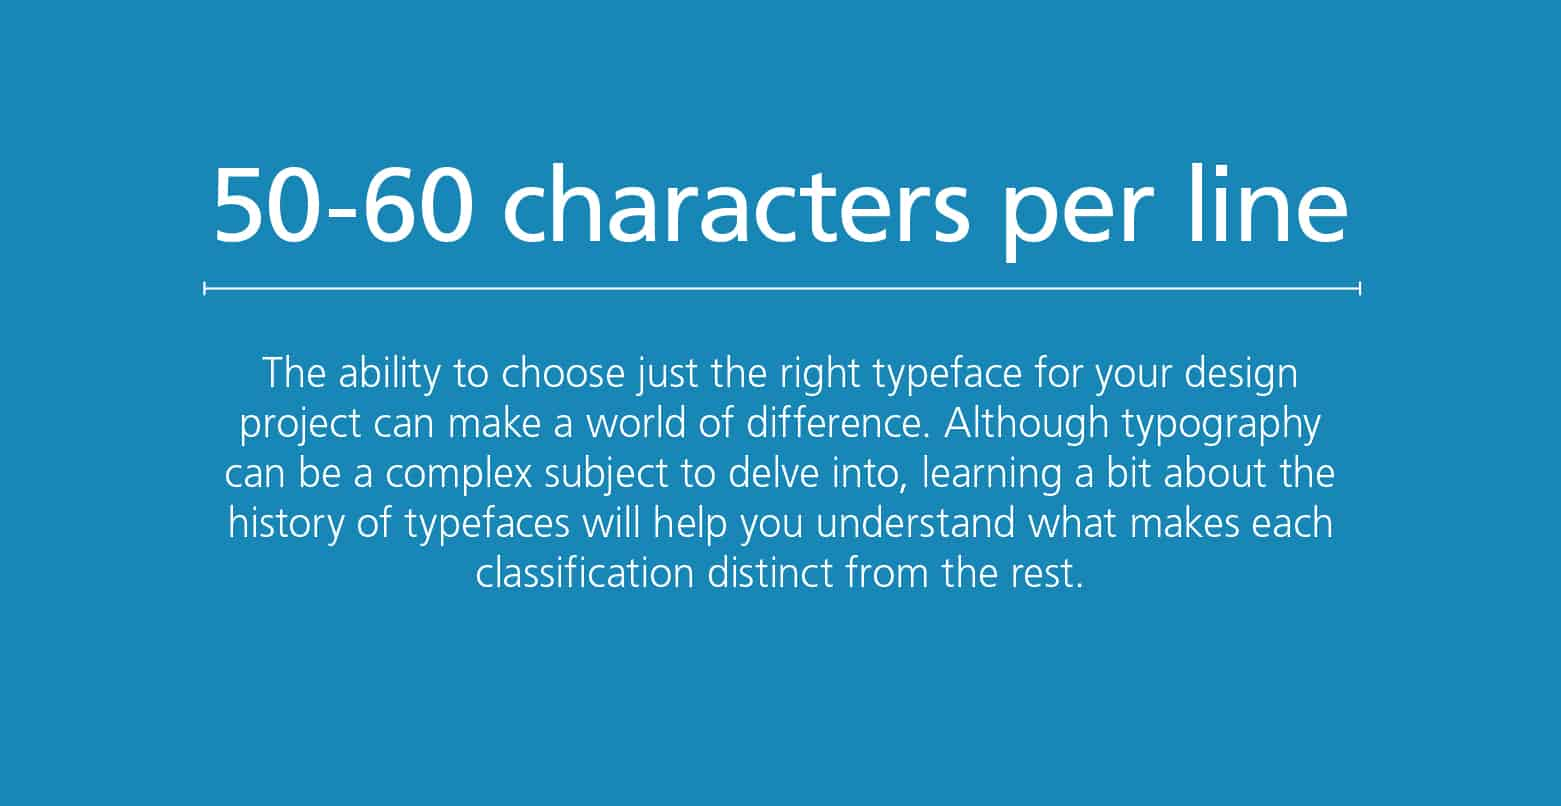 Graphic Design Tips: Keep copy to 50-60 characters per line